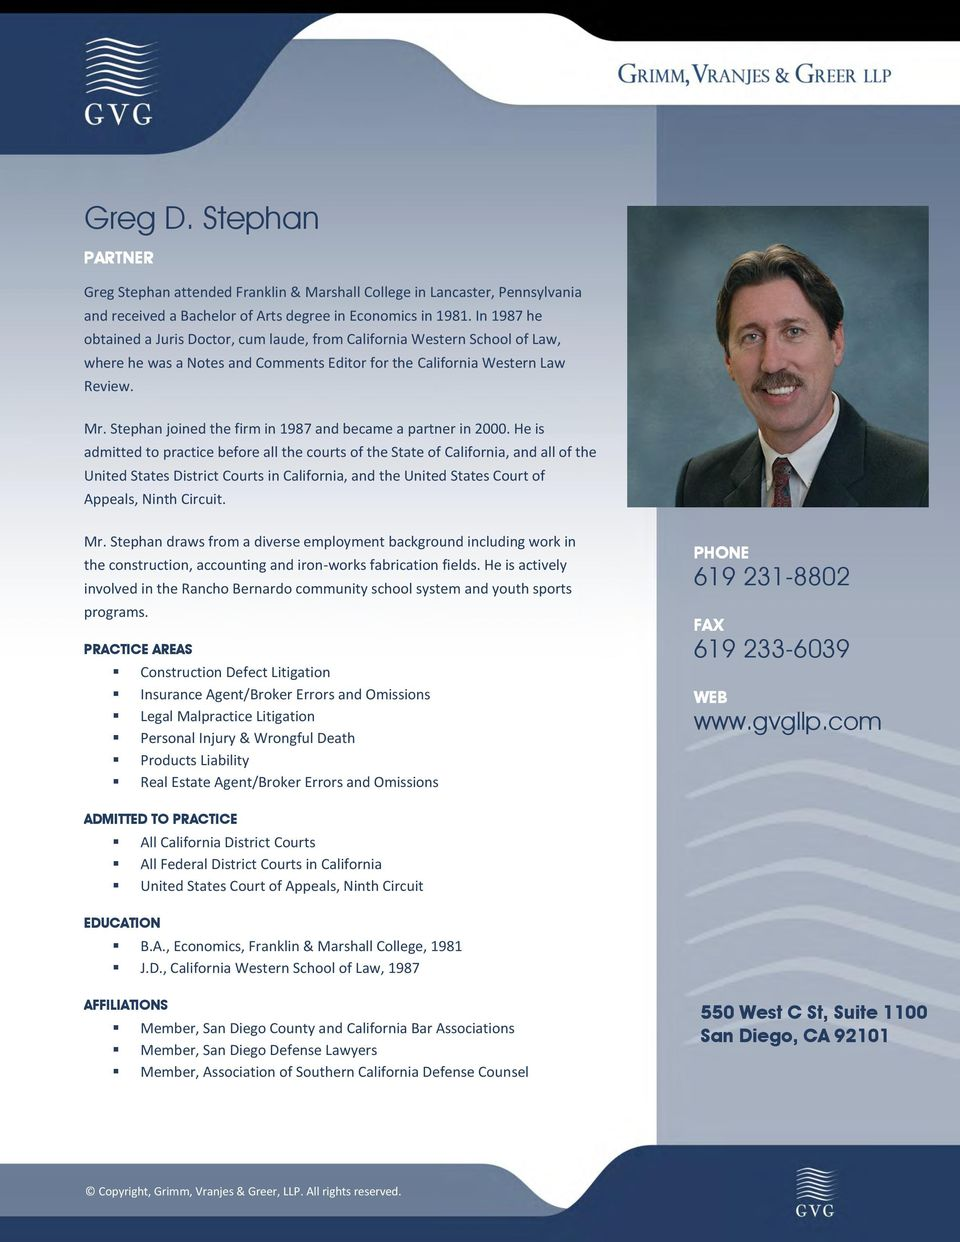 Stephan joined the firm in 1987 and became a partner in 2000.